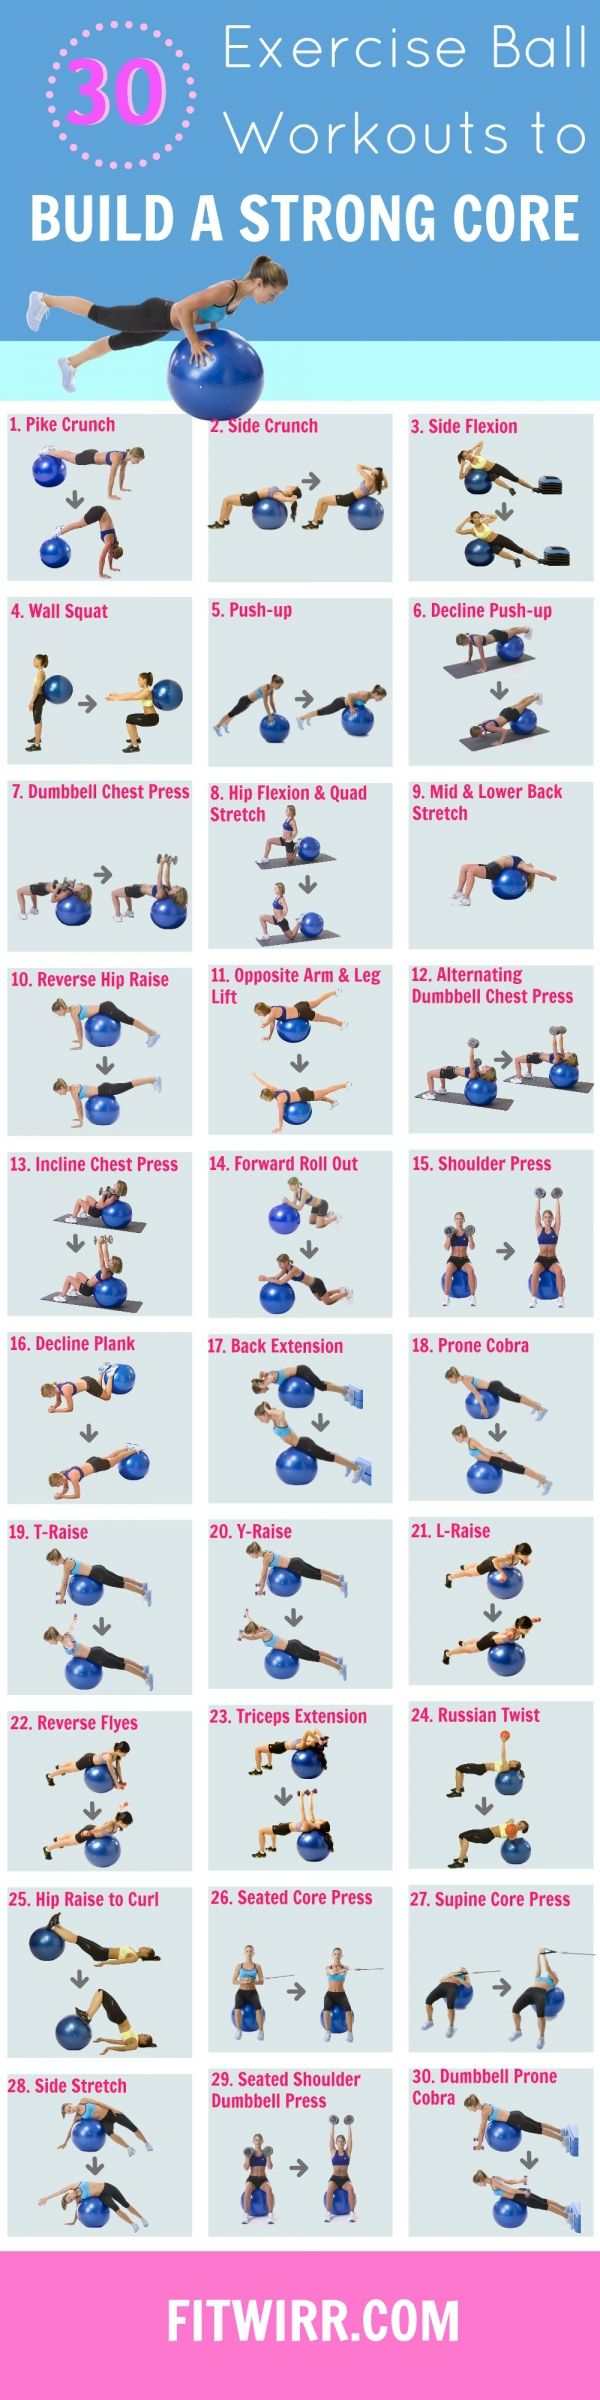 Be A Baller a Big Baller BayBay hahaha Loathe Your Love Handles? These 26 Exercises Can Banish Them for Good!